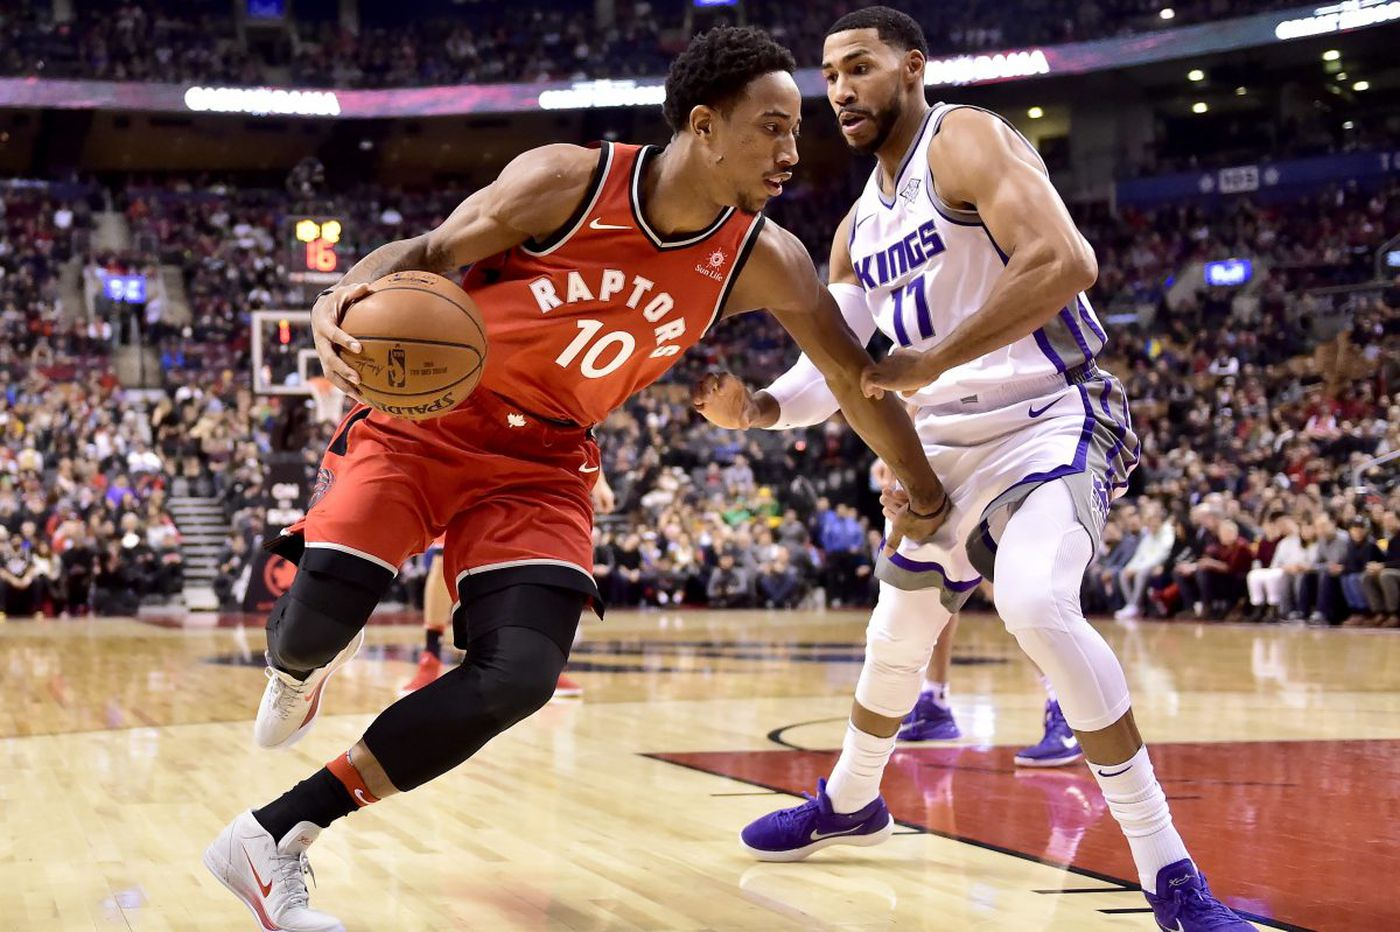 Sixers-Raptors preview: DeMar DeRozan, Serge Ibaka could make this game ugly